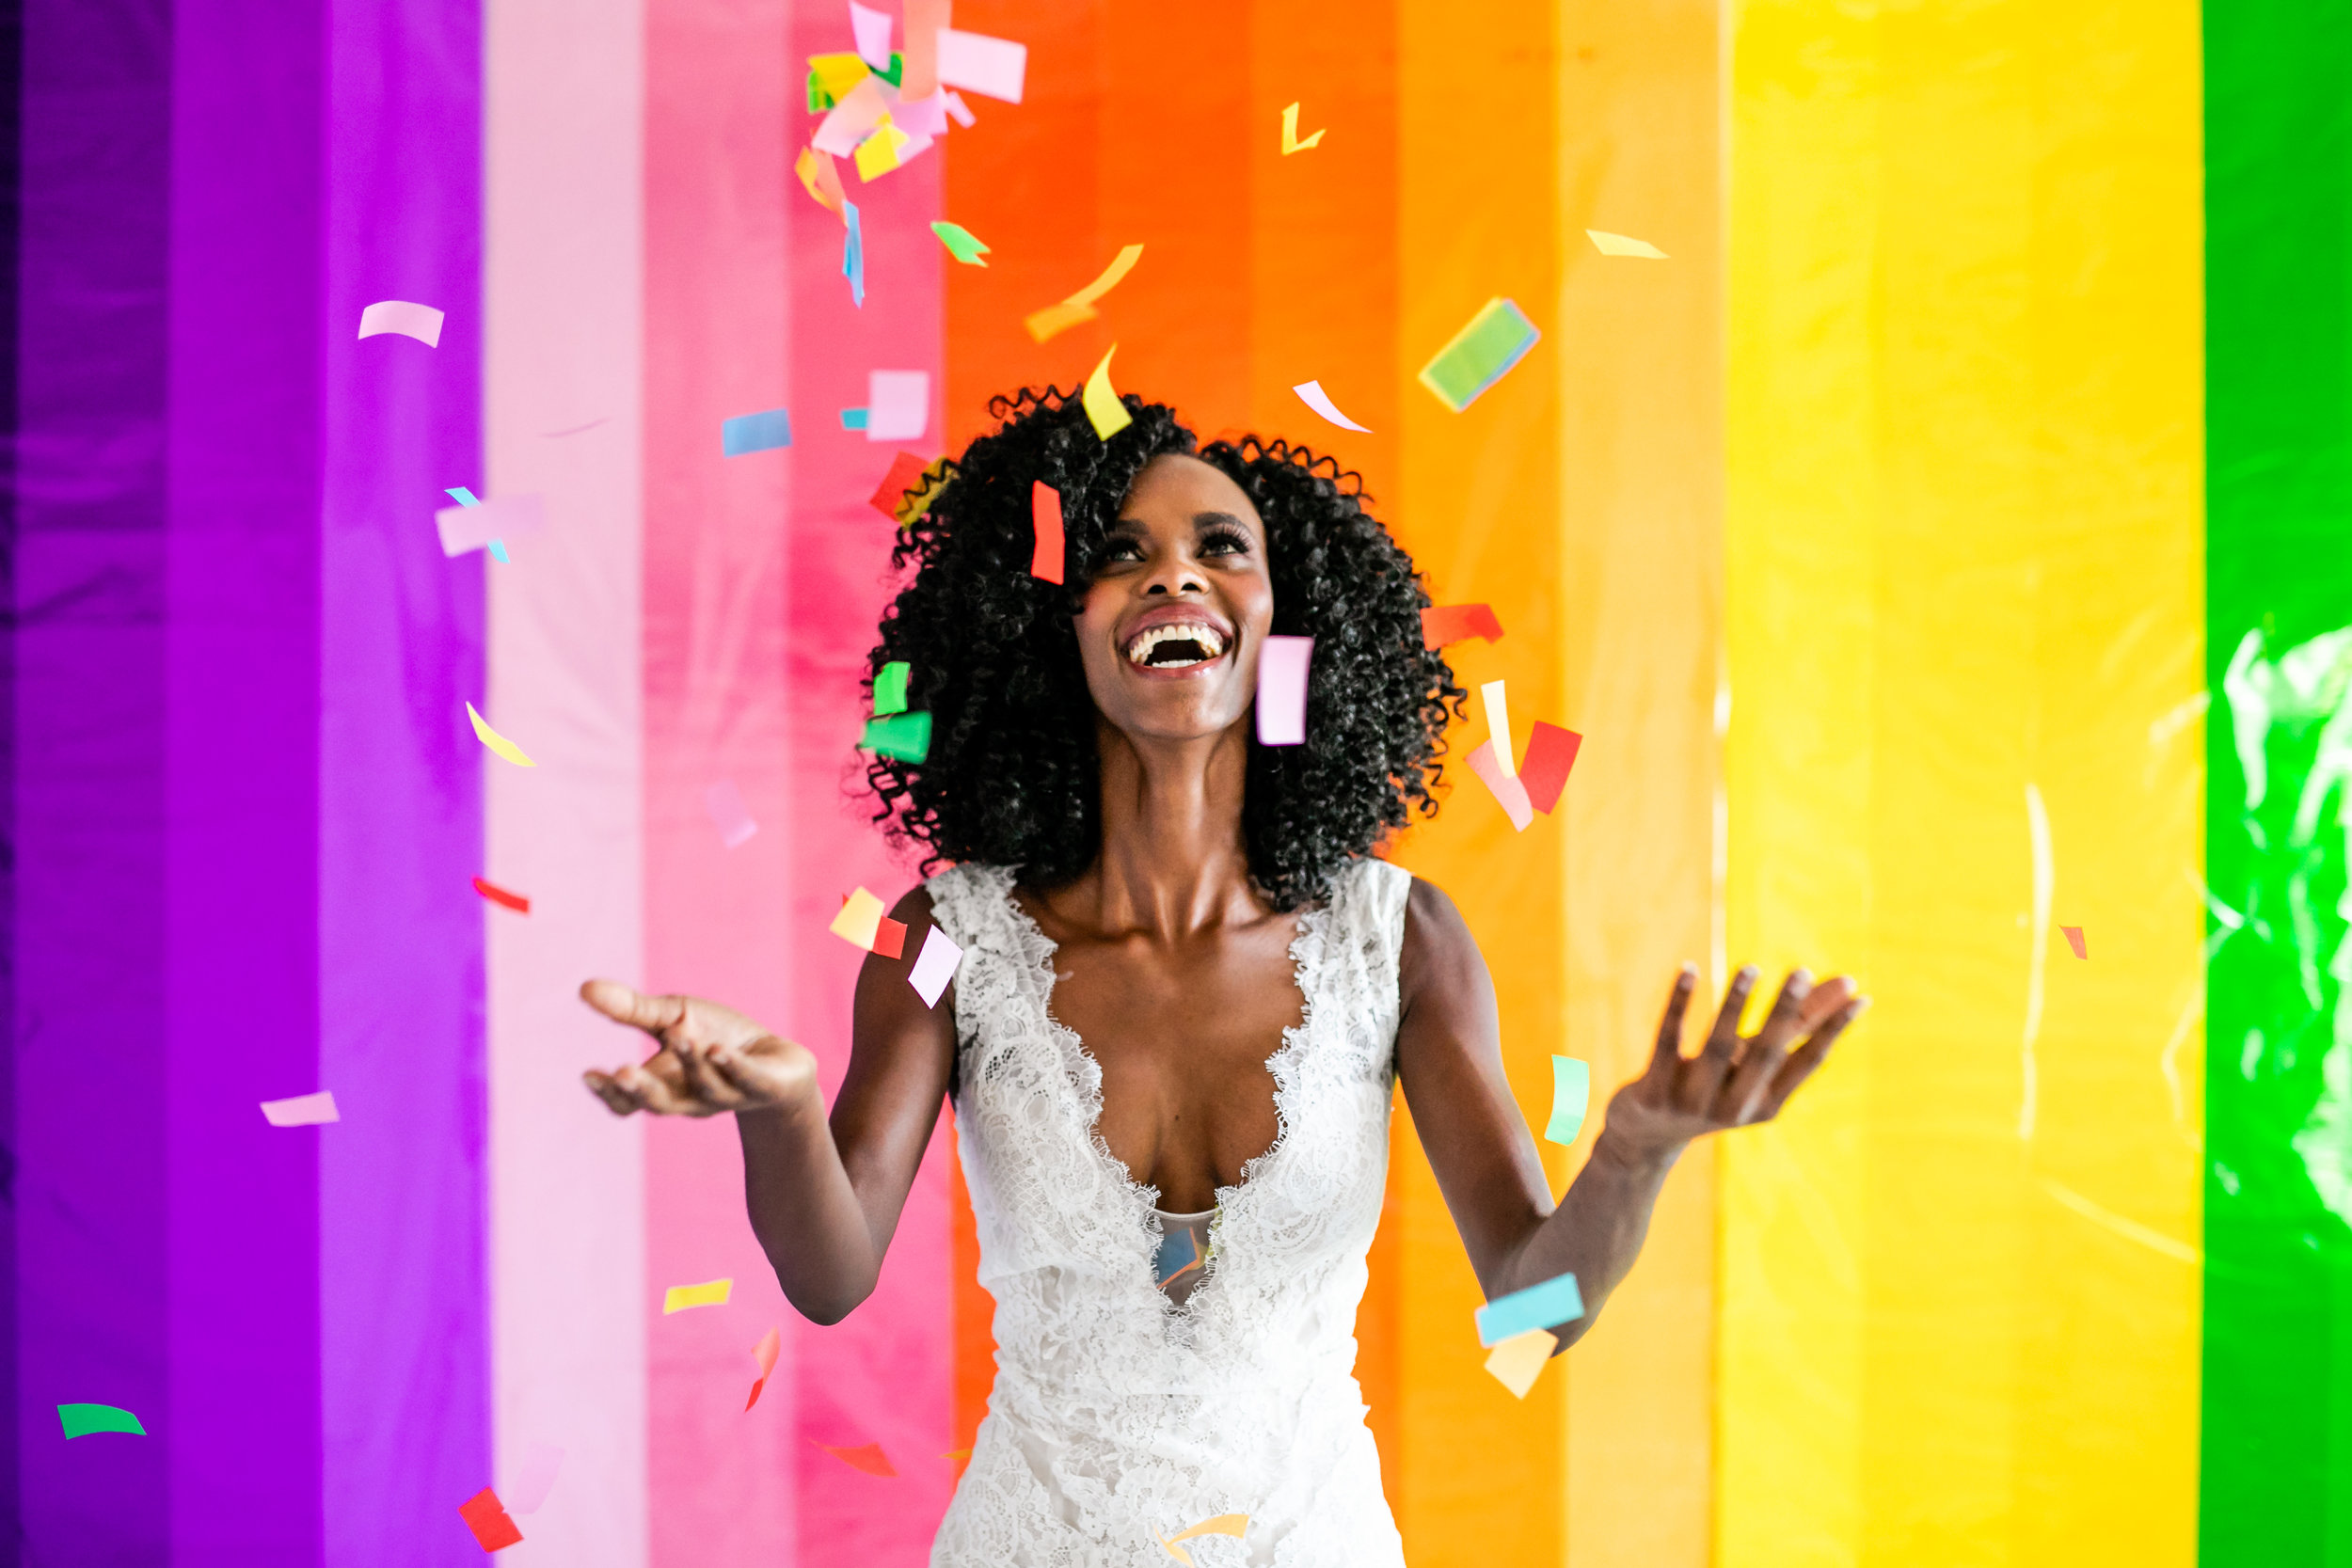 Colorful Striped Wedding Inspo - Confetti